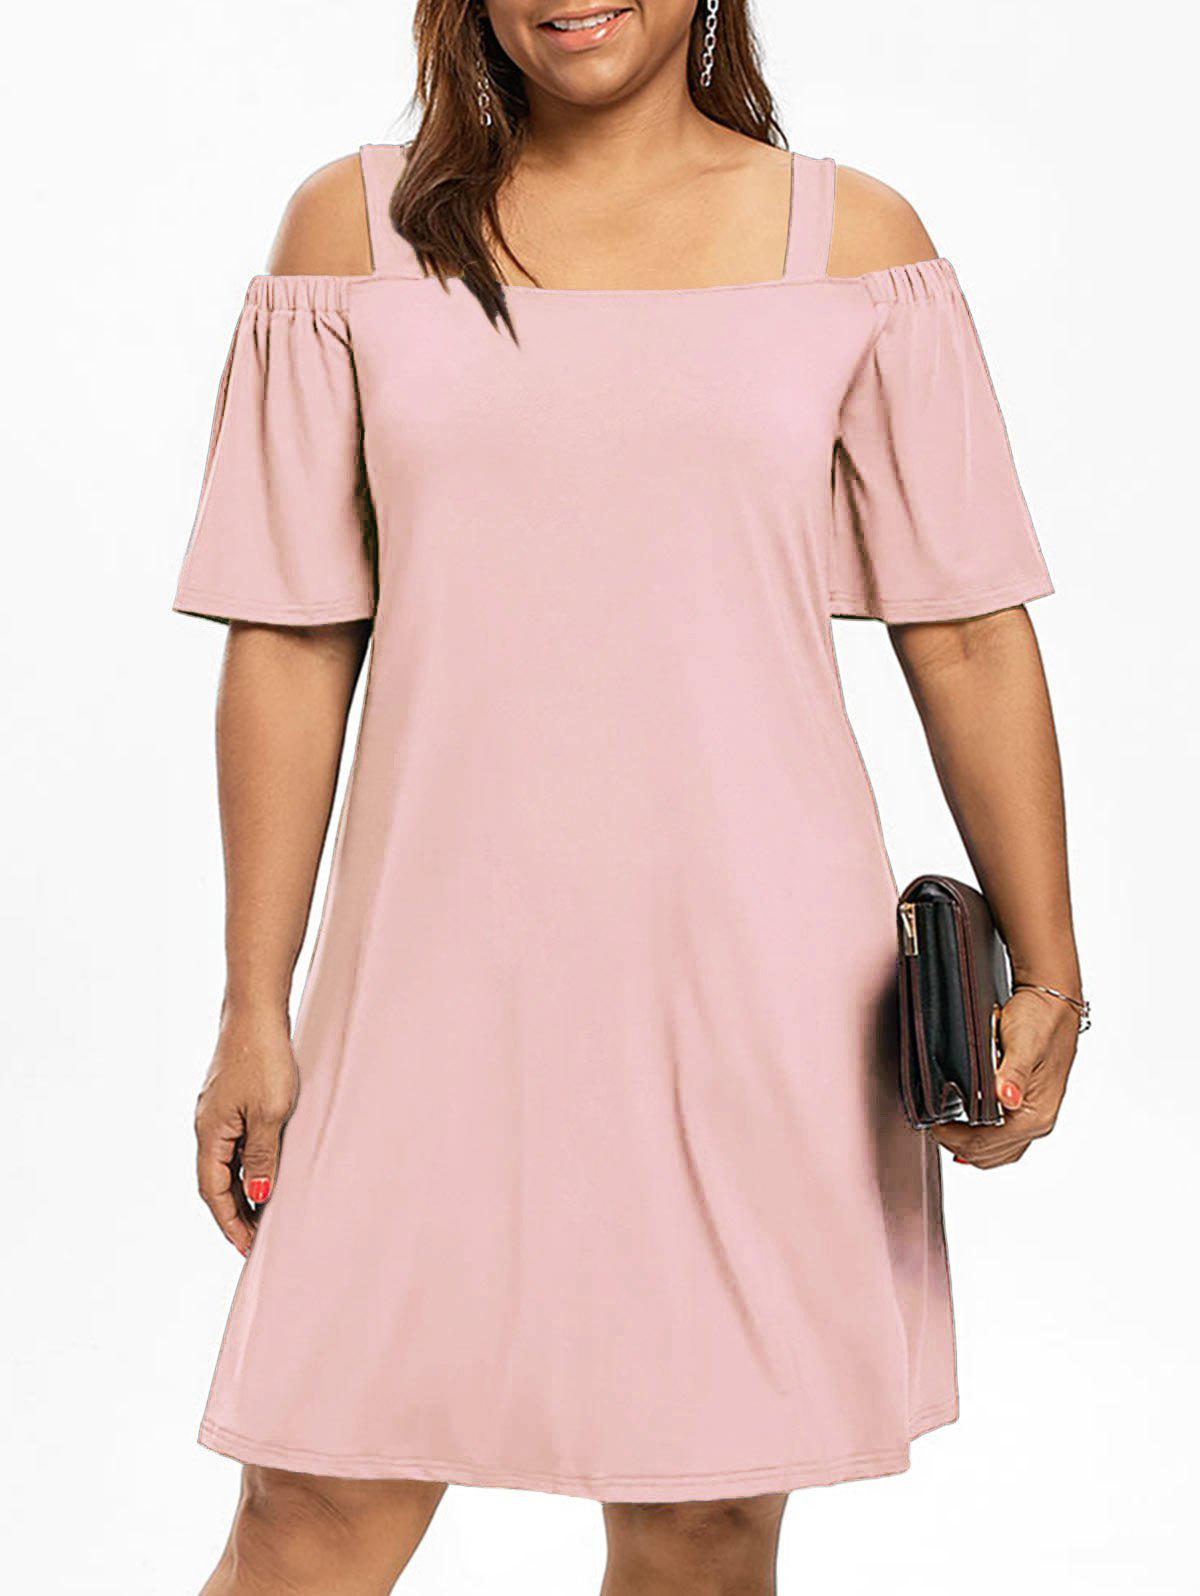 a4c70d1d8a6 34% OFF  Cold Shoulder Half Sleeve Plus Size Dress